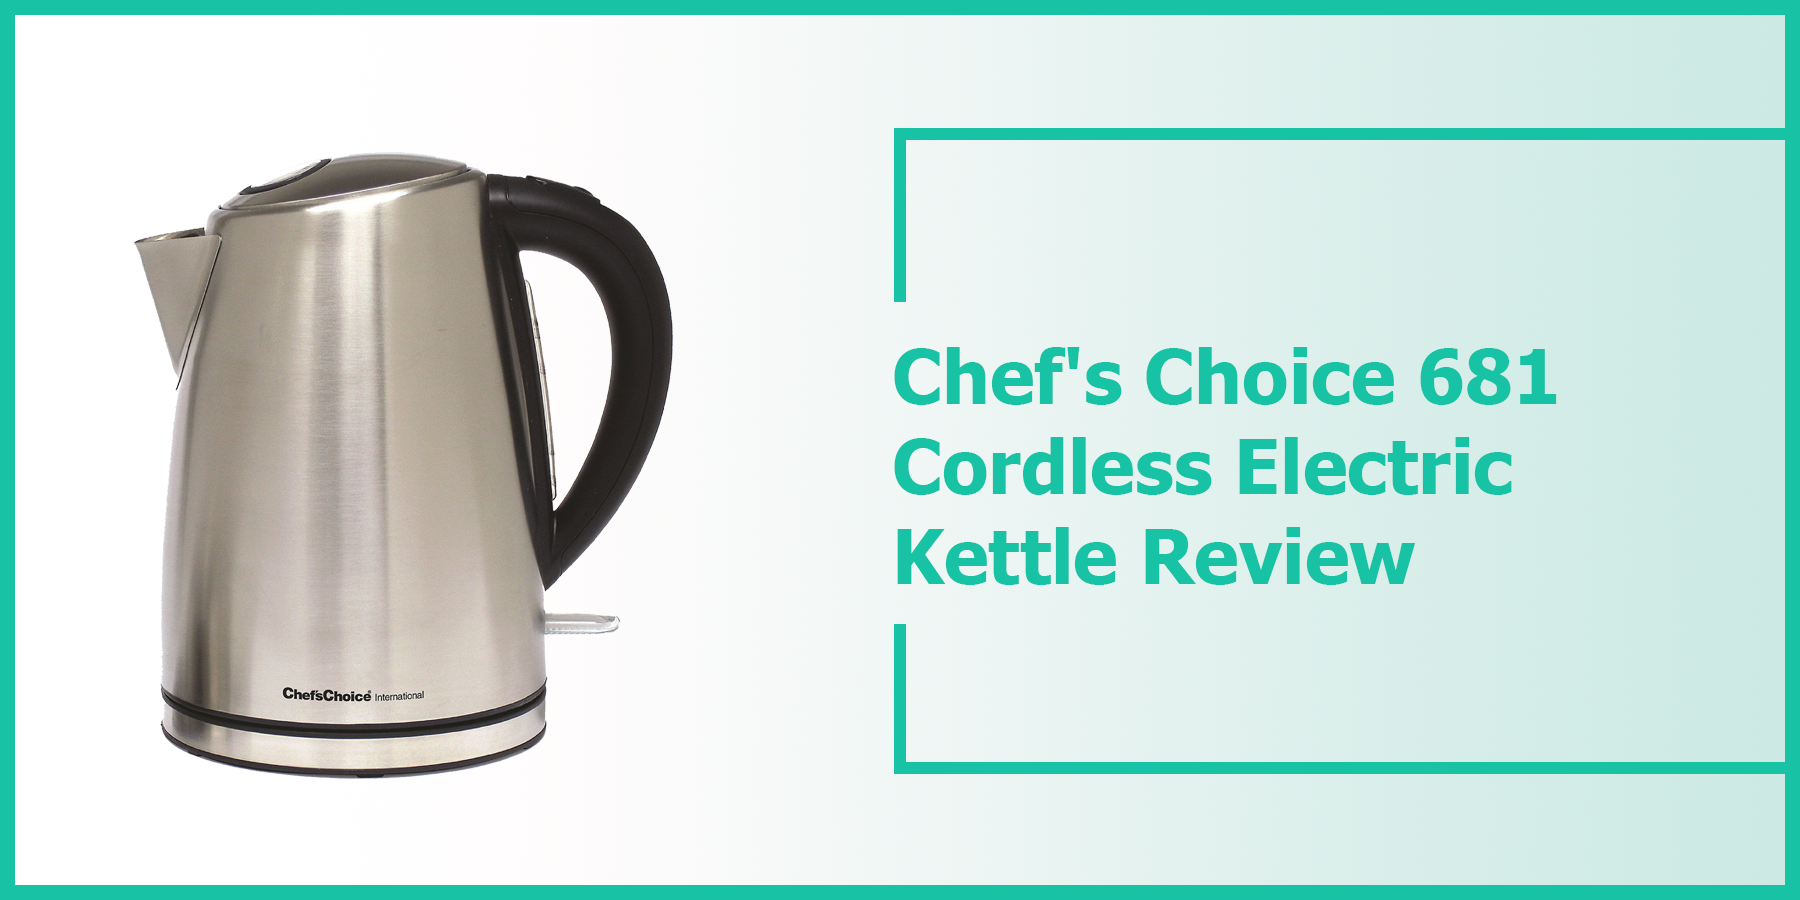 Chef's Choice 681 Cordless Electric Kettle Review